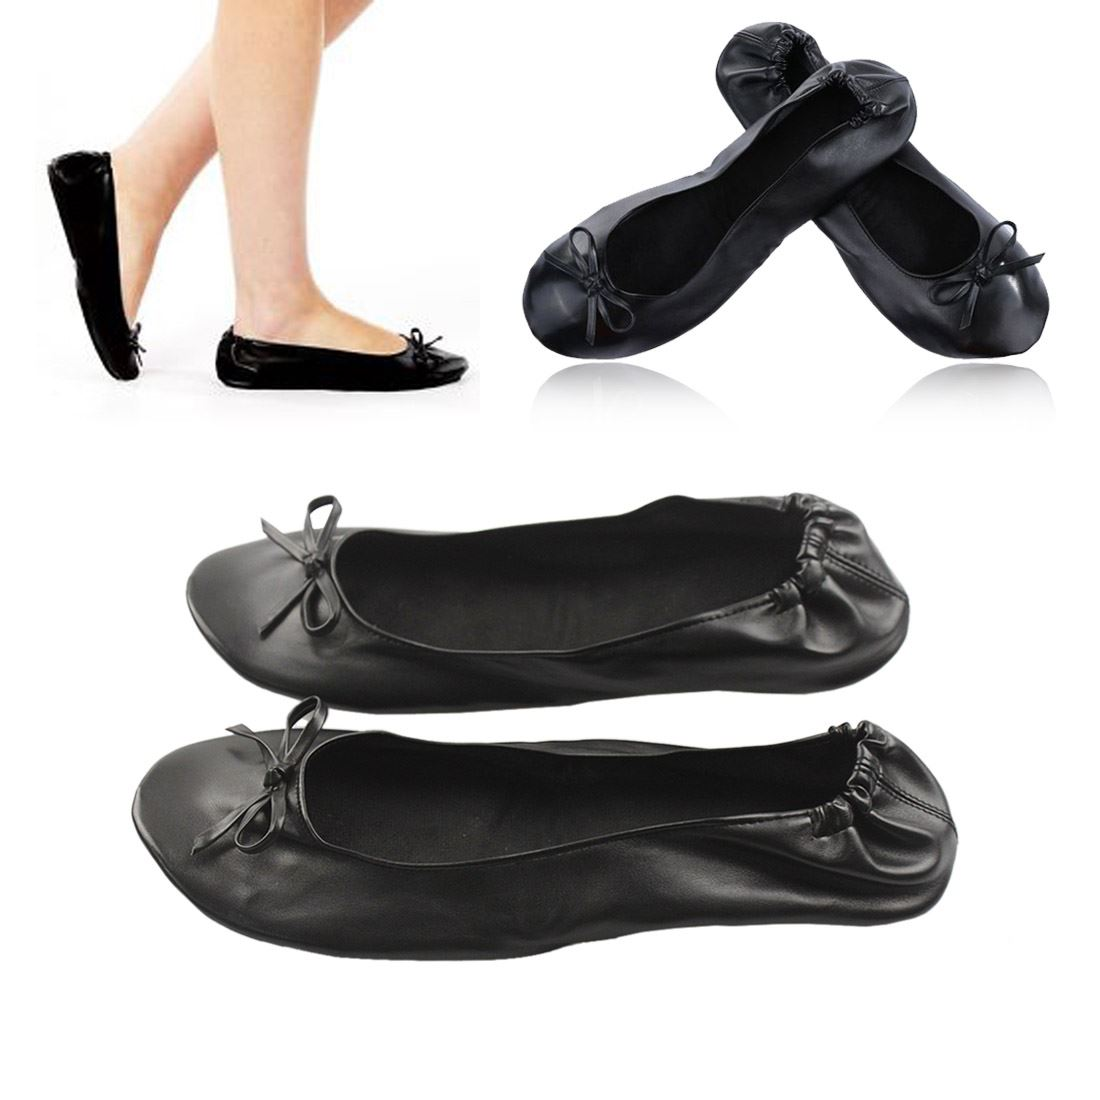 Spare Soles® are compact, rollable, roll up, foldable, take-anywhere flats that fit in the smallest of purses or pockets. when your feet have had enough but you haven't. Spare Soles® stretchy fashionable accommodates tired and swollen feet.